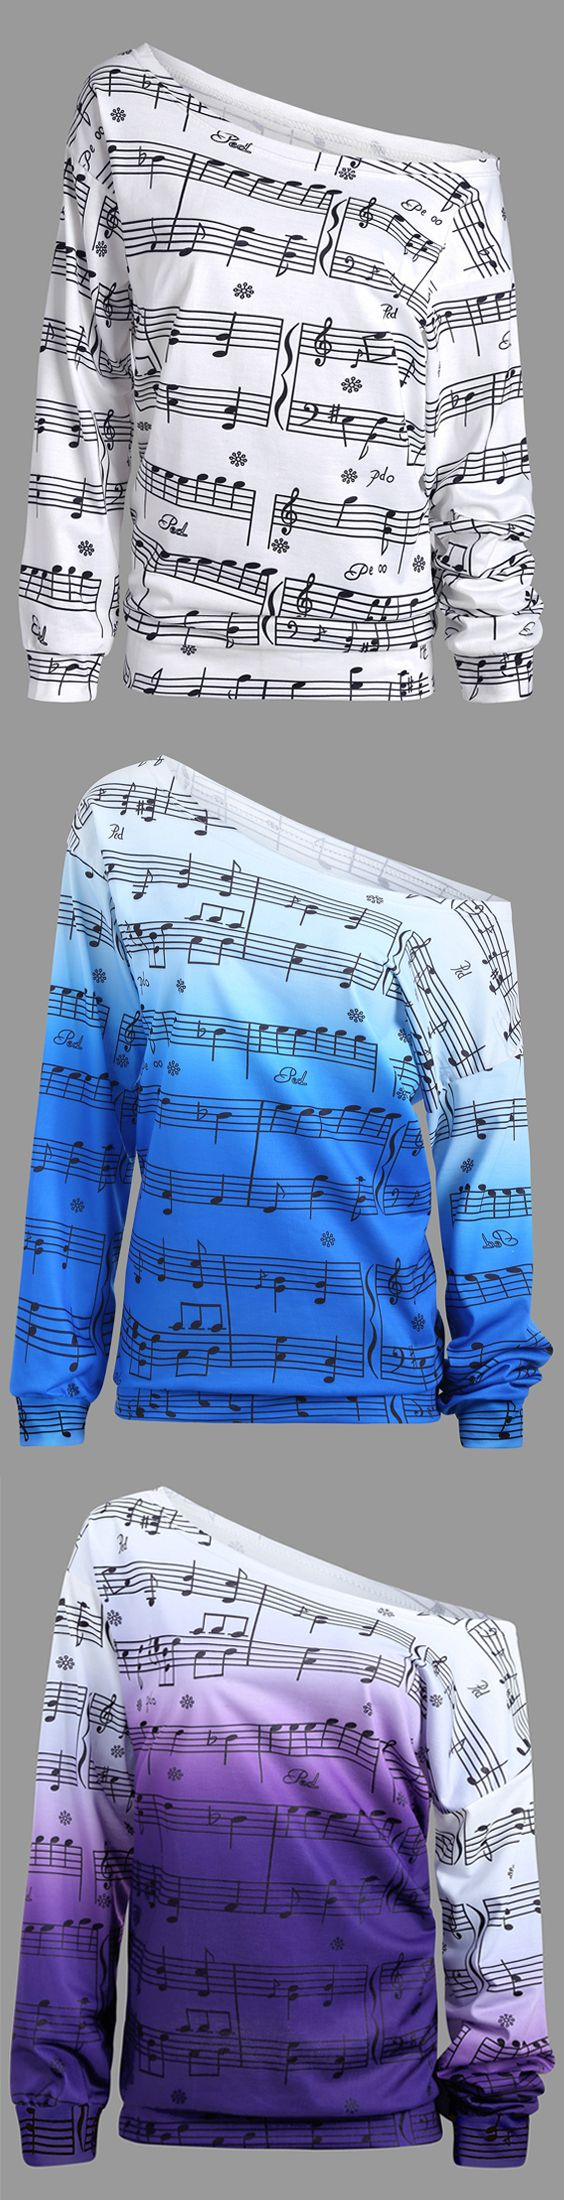 Bass Clef Music Pullover Hoodie Hooded Sweatshirt Top Blouse for Teen Girls Boys